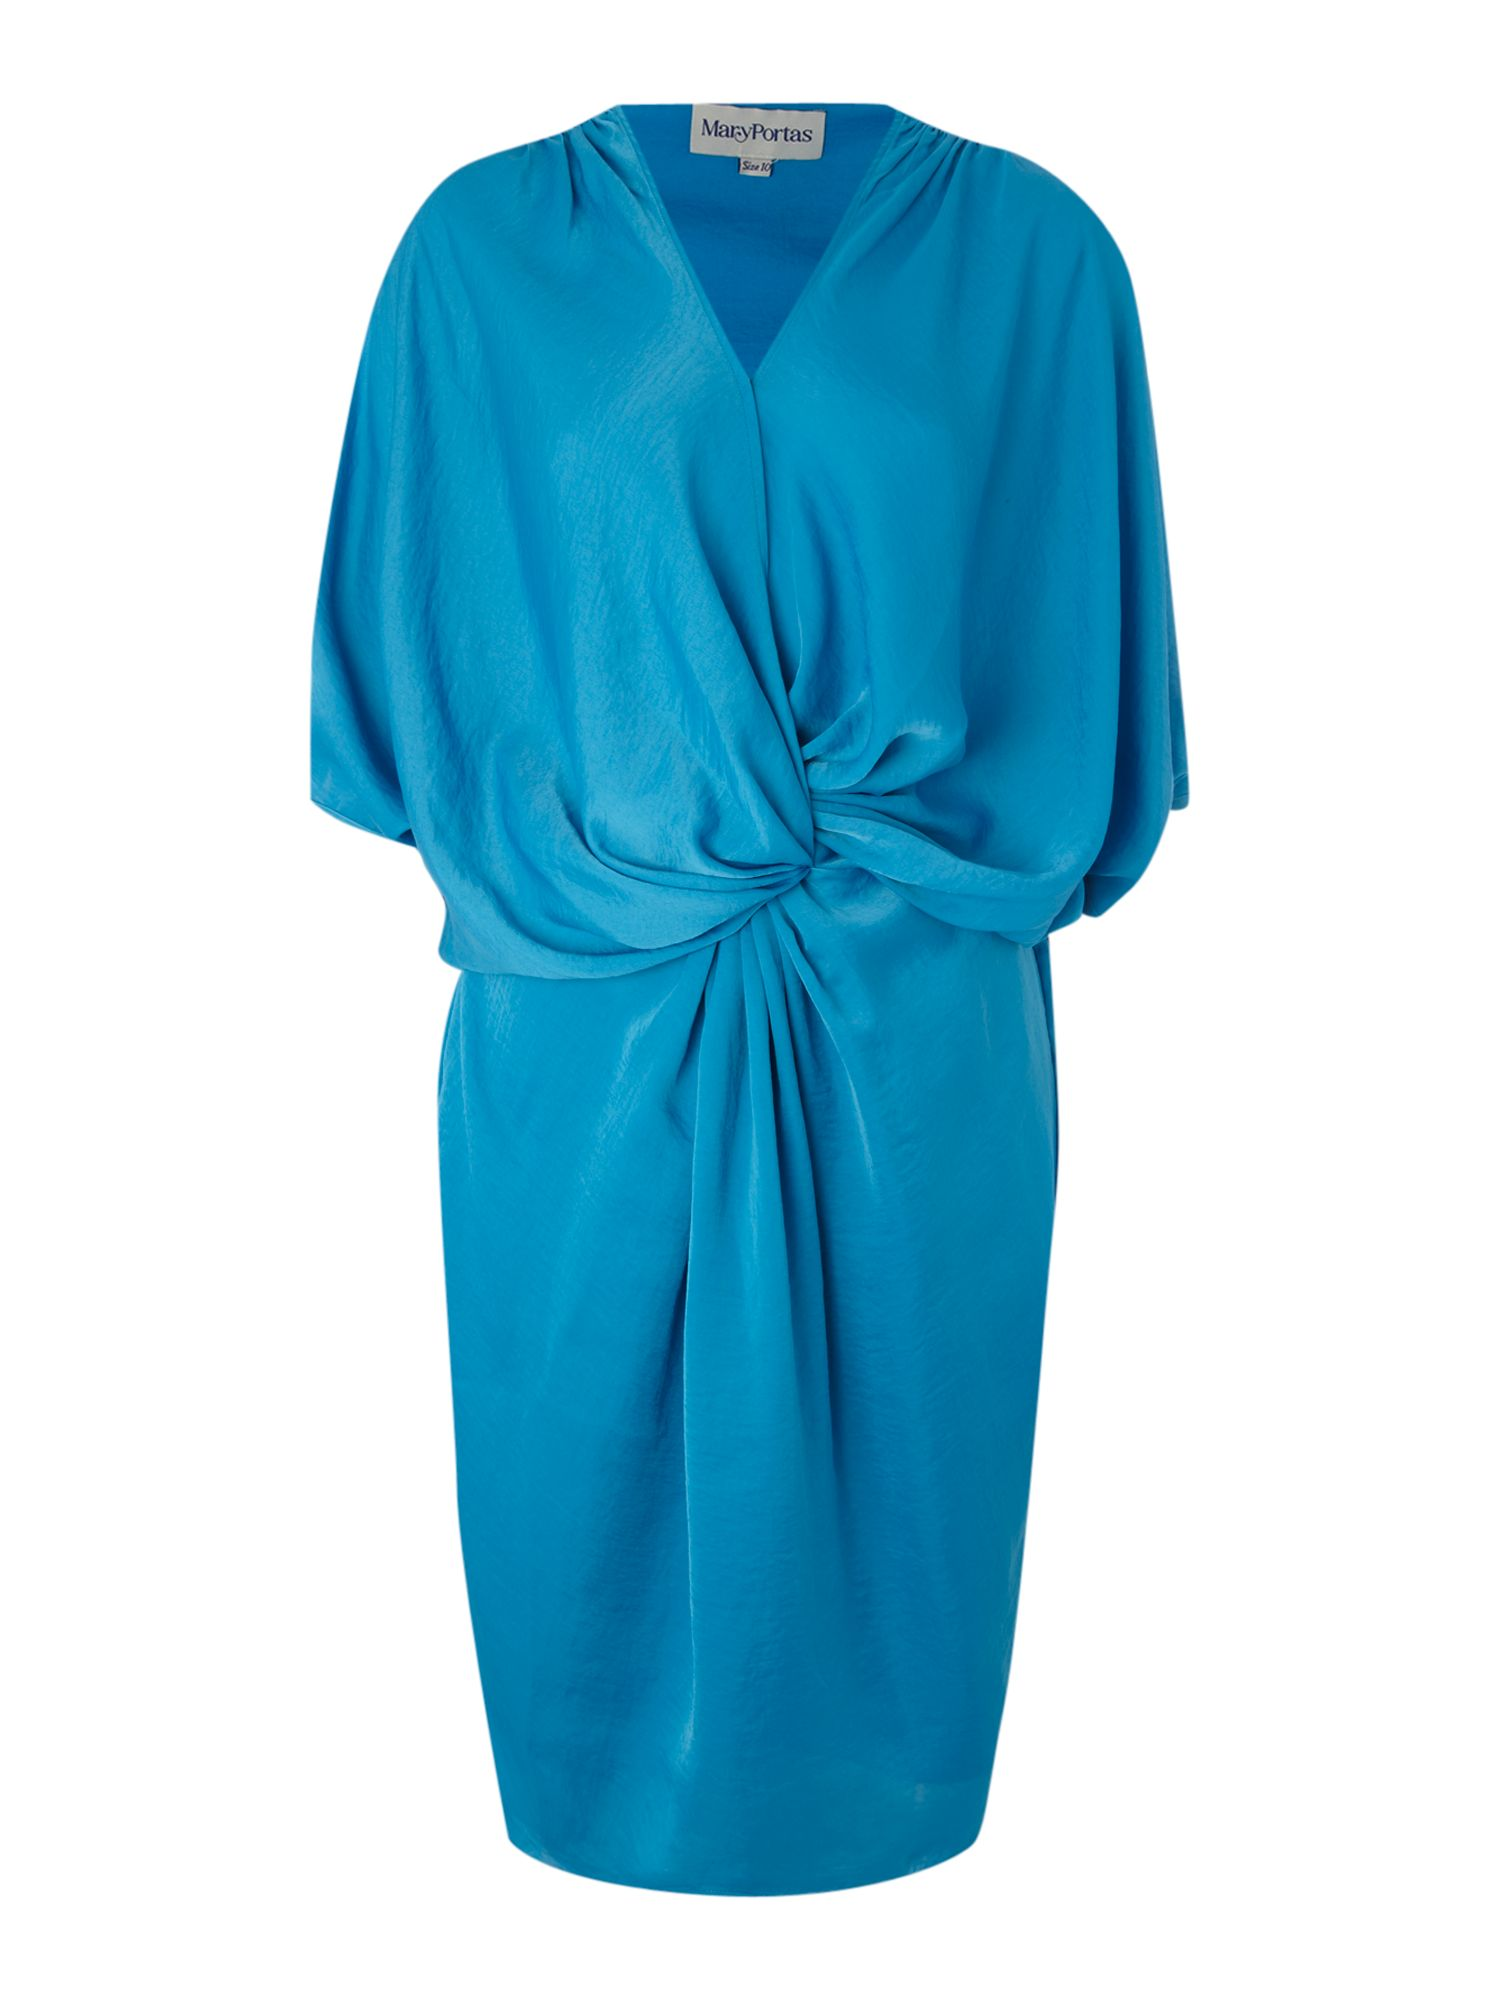 Twist front drape dress